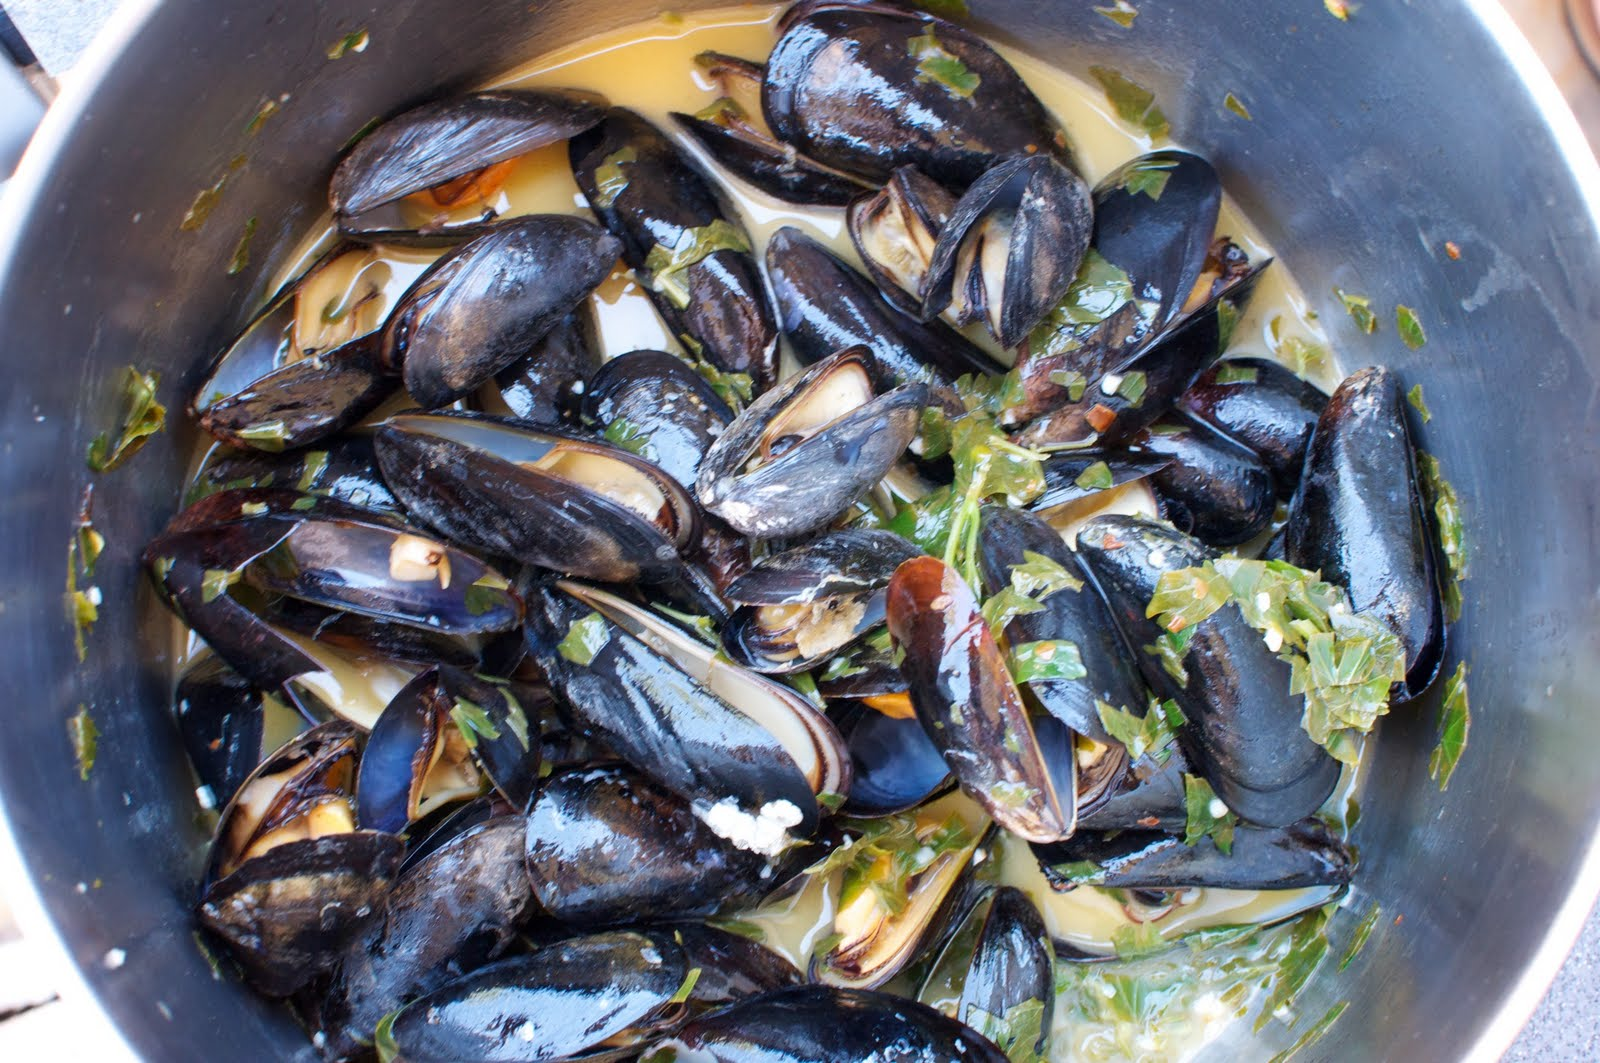 Grilled Mussels in Awesome Sauce